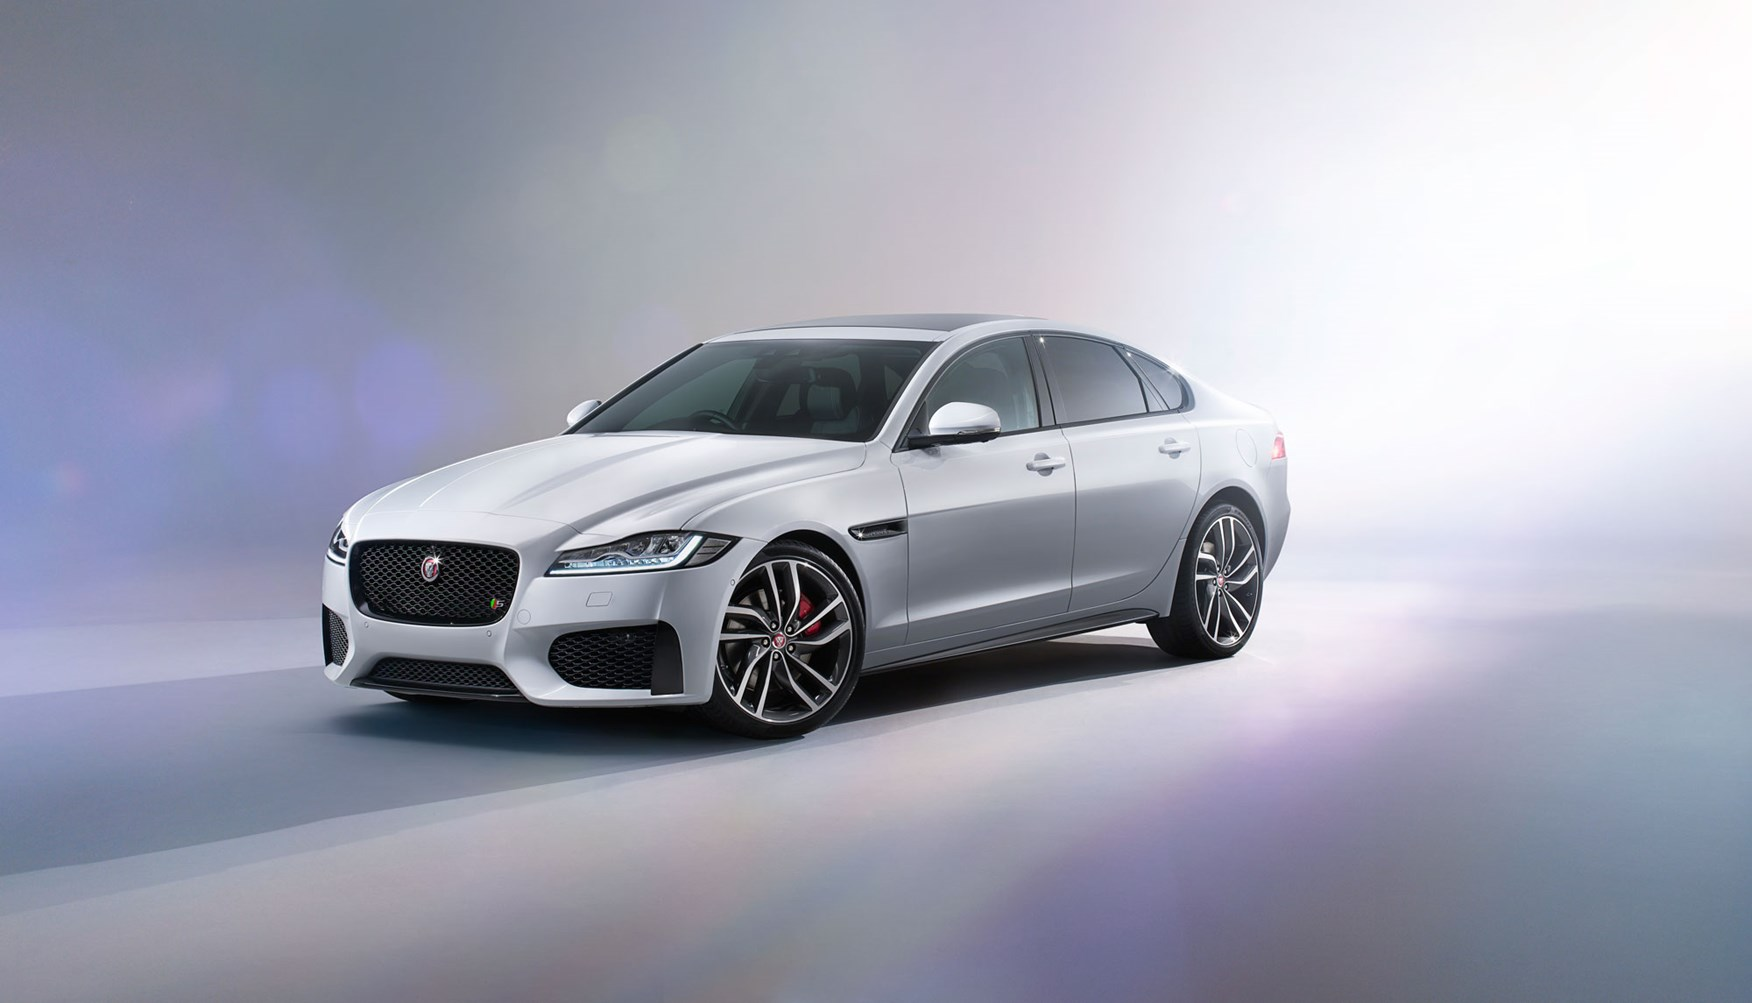 New Jaguar XF 2015 revealed honey I inflated the XE by